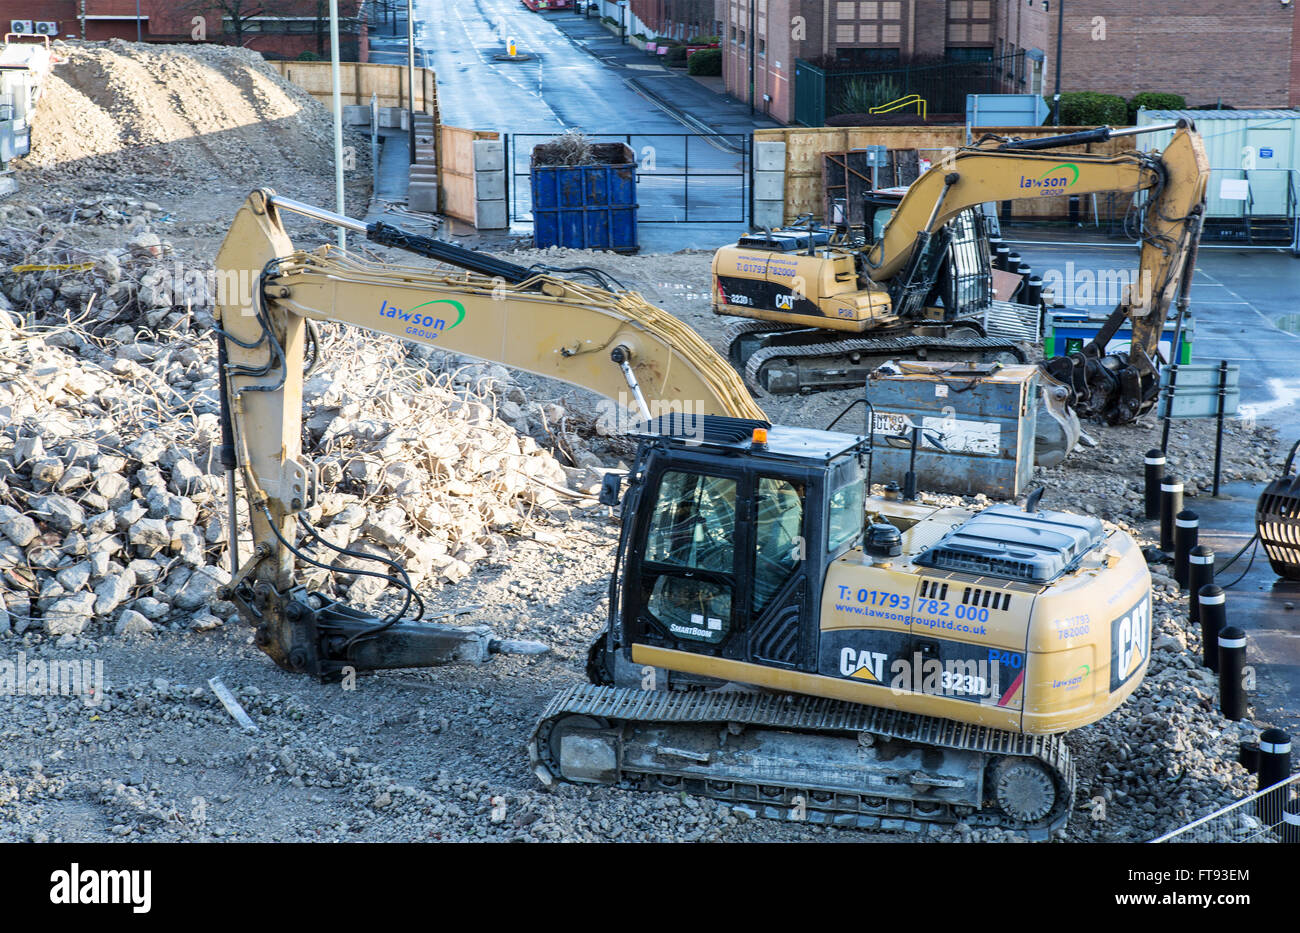 Demolition of the Wyvern car park Swindon - Stock Image